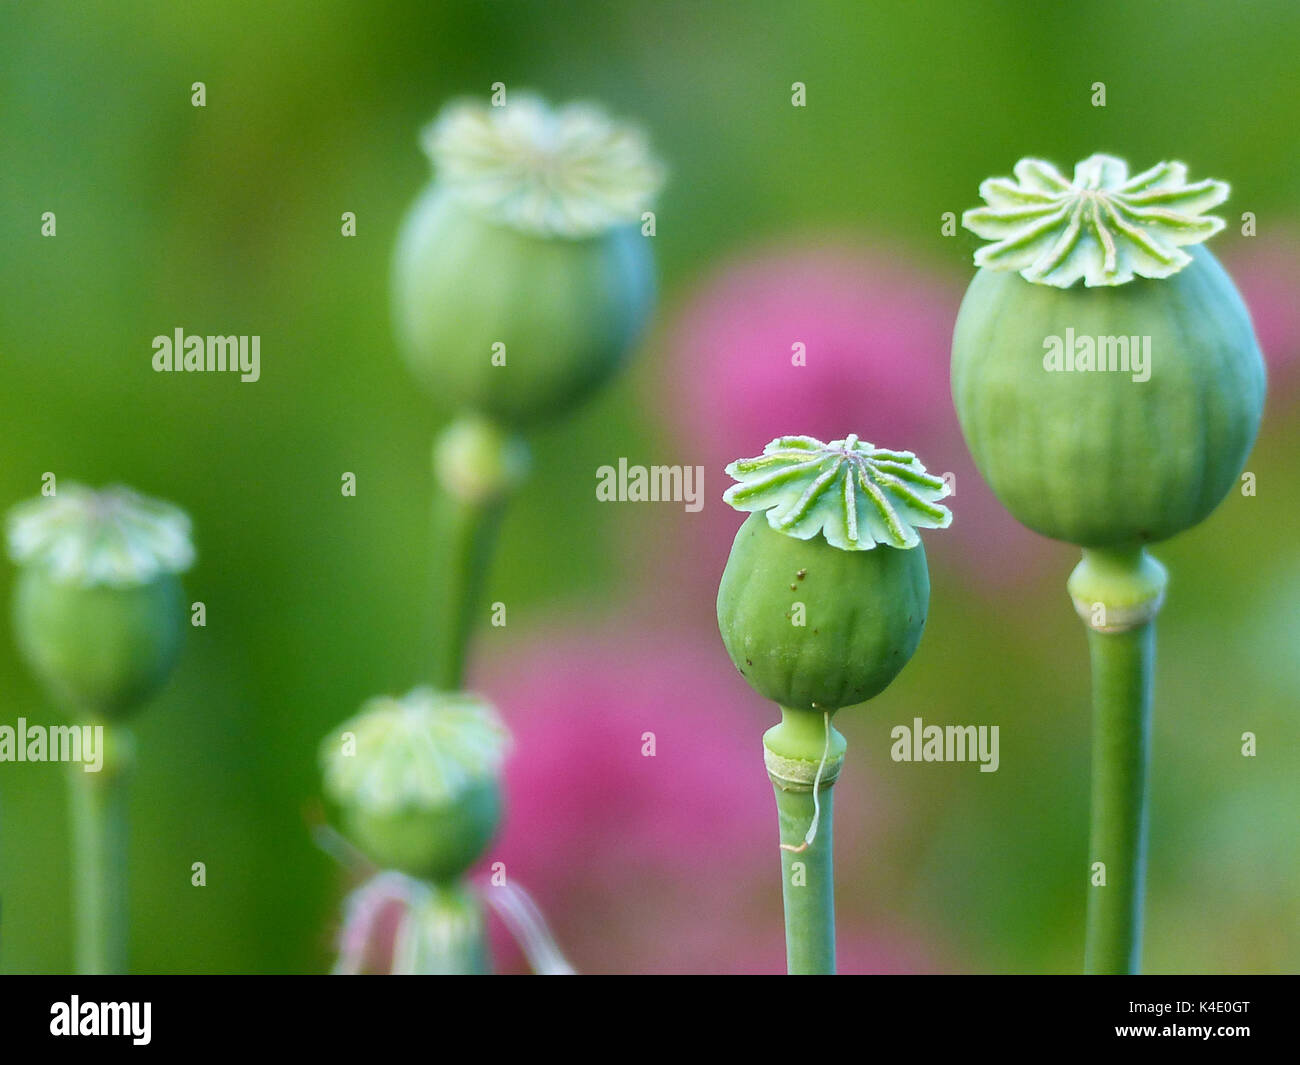 Poppy Capsules Of Withered Poppies, Opium Poppy, Ornamental Version - Stock Image